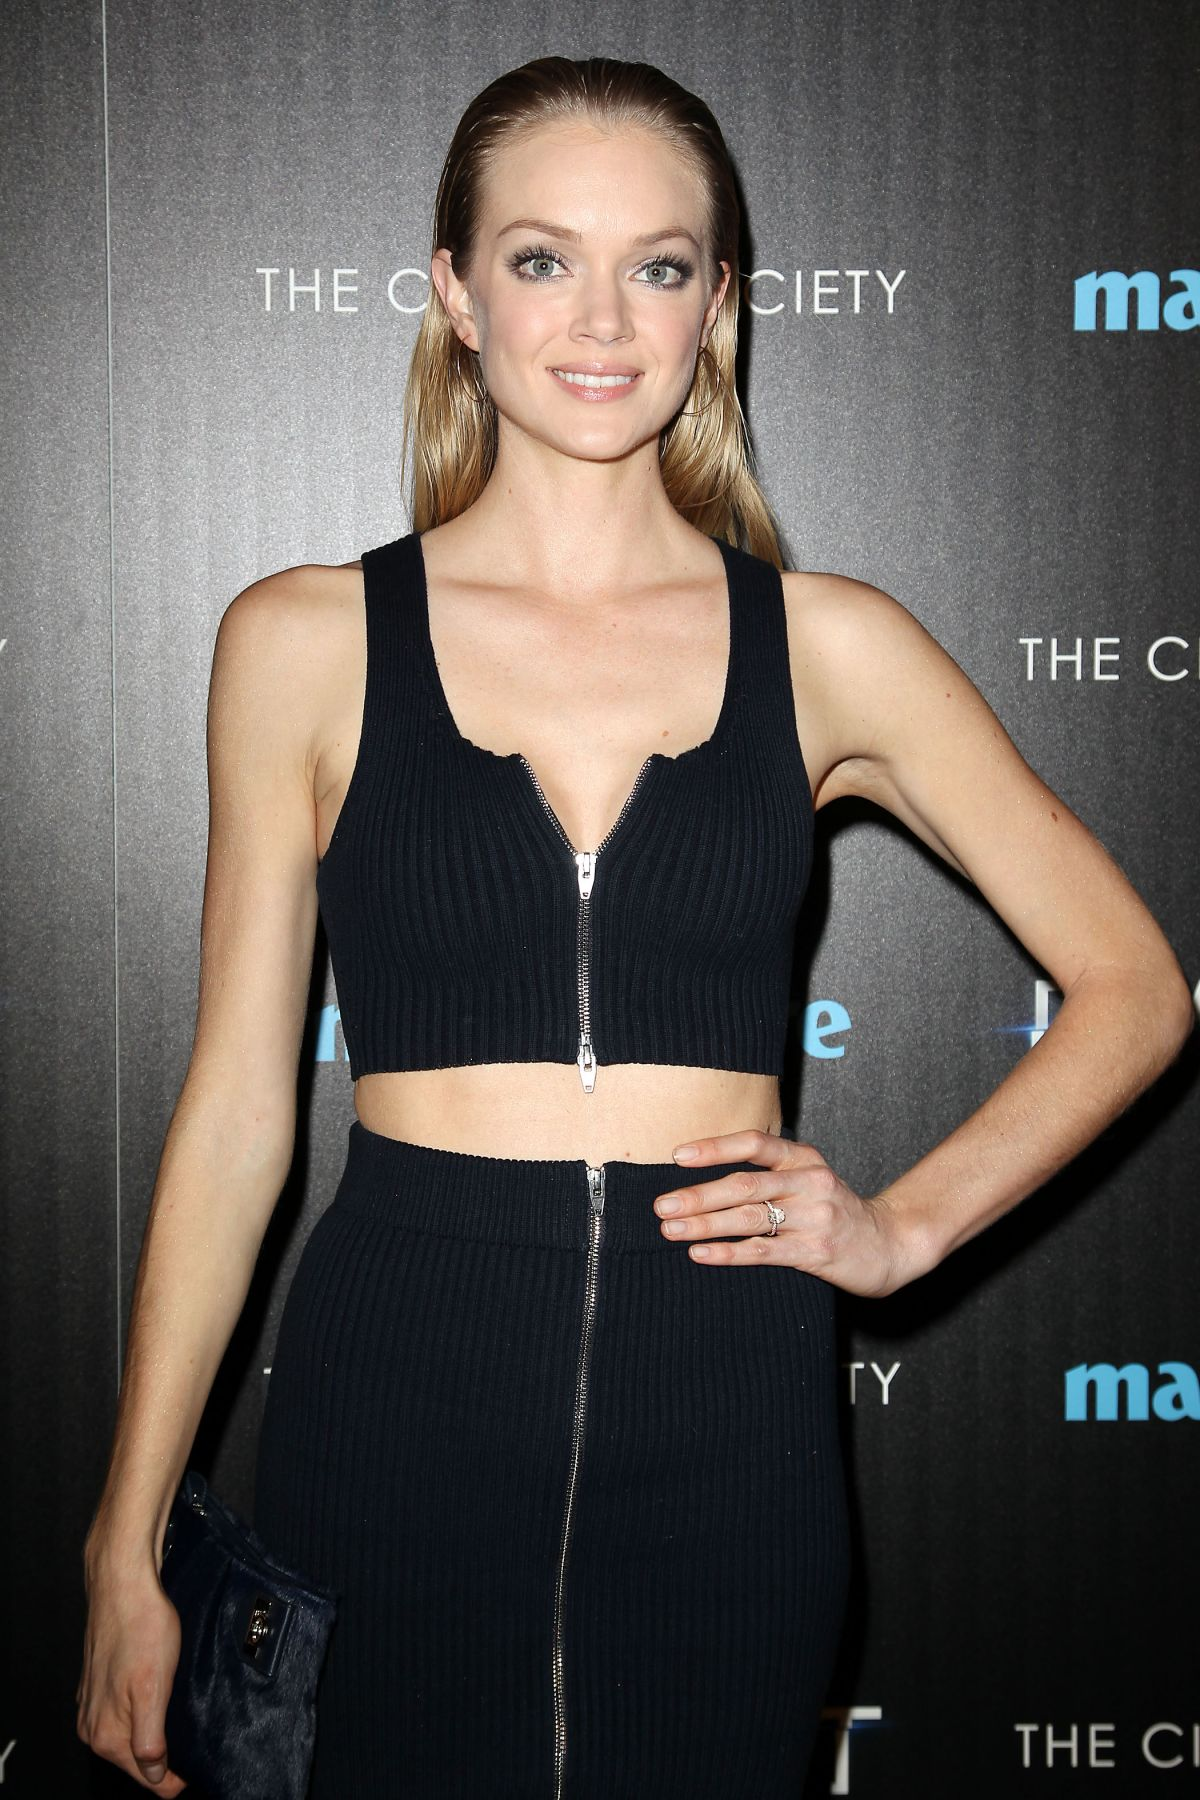 LINDSAY ELLINGSON at Divergent Screening in New York